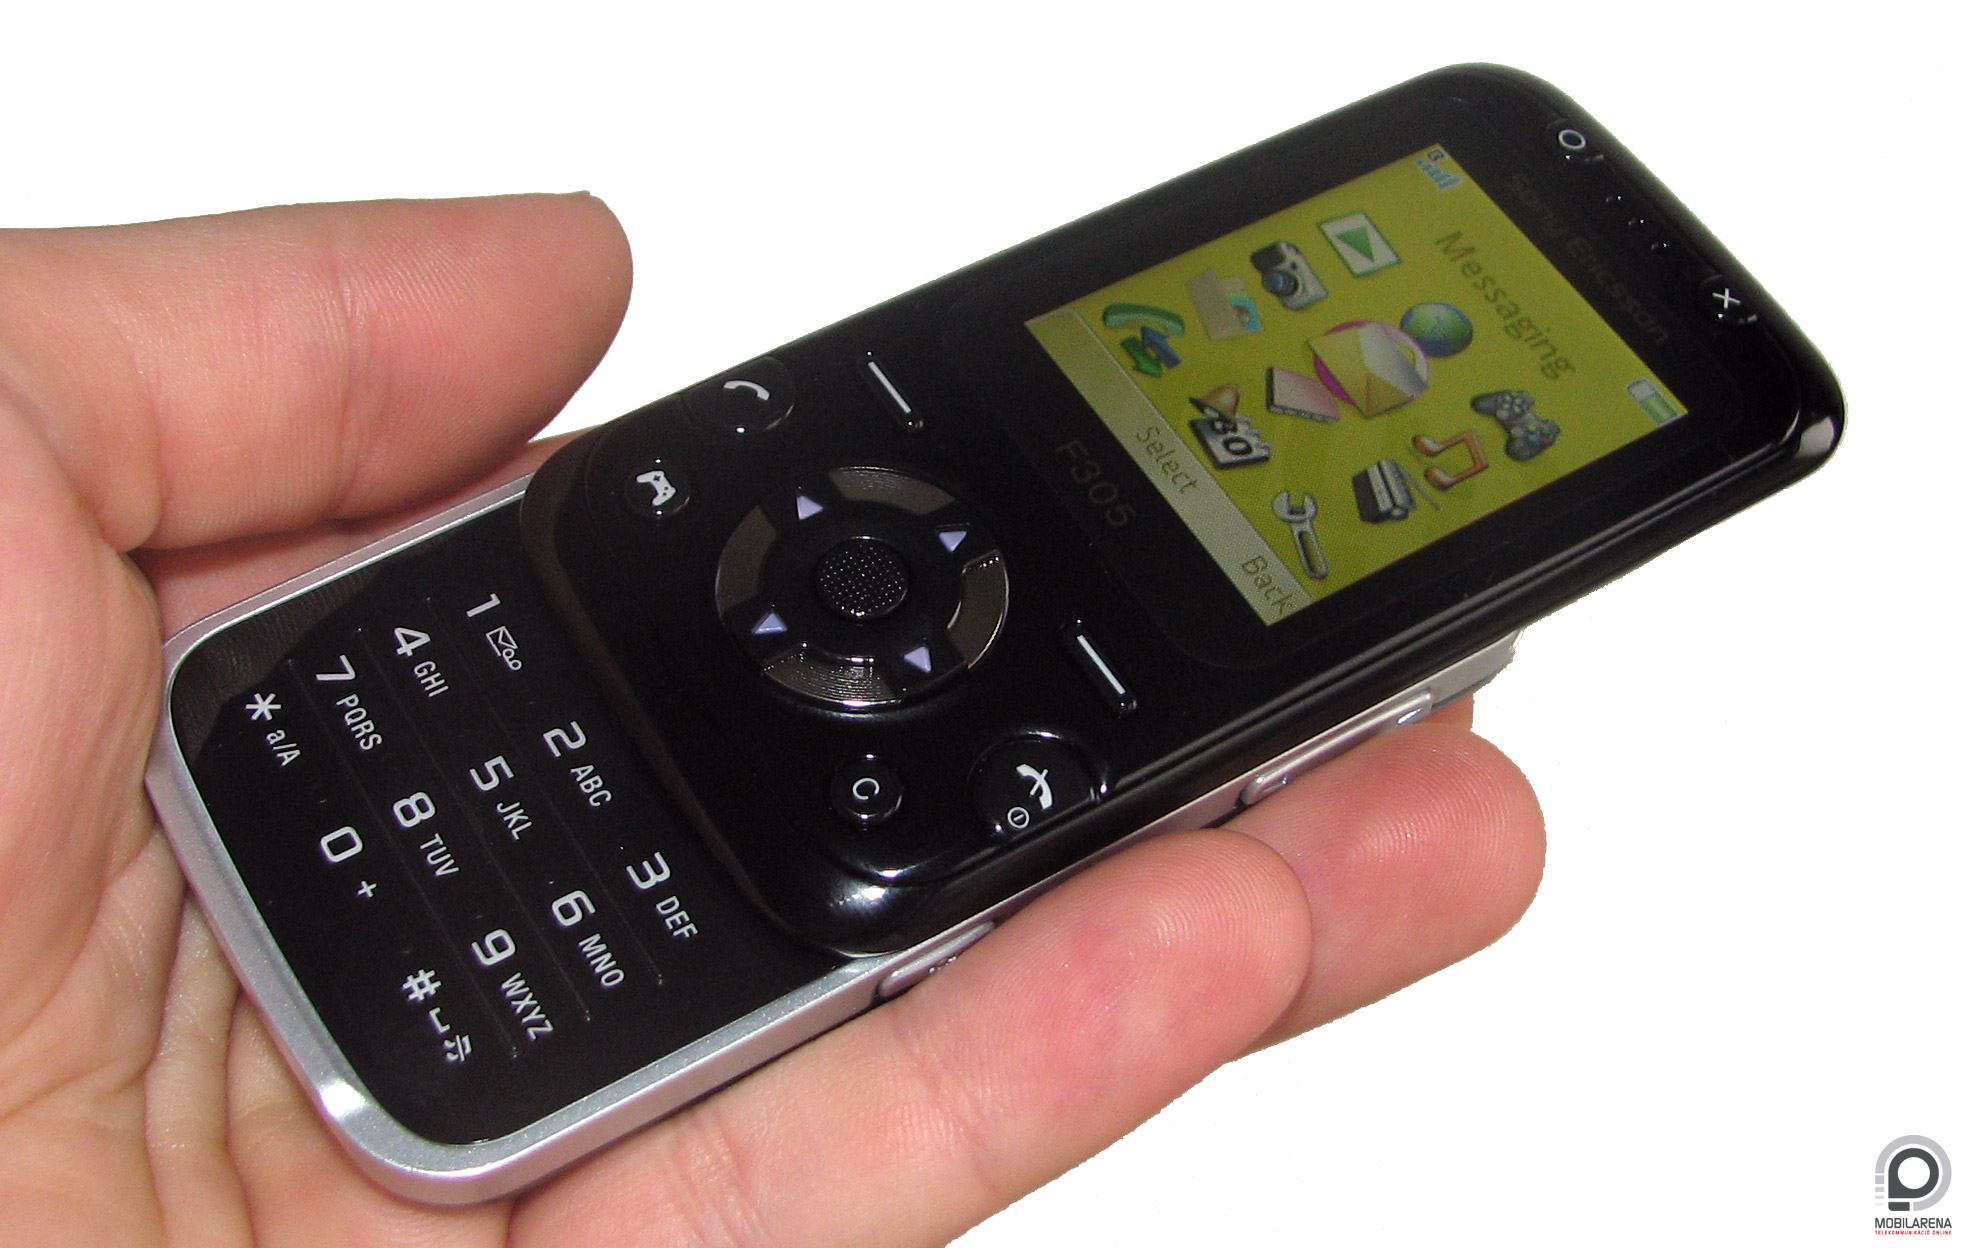 Sony Ericsson F305 - games and music